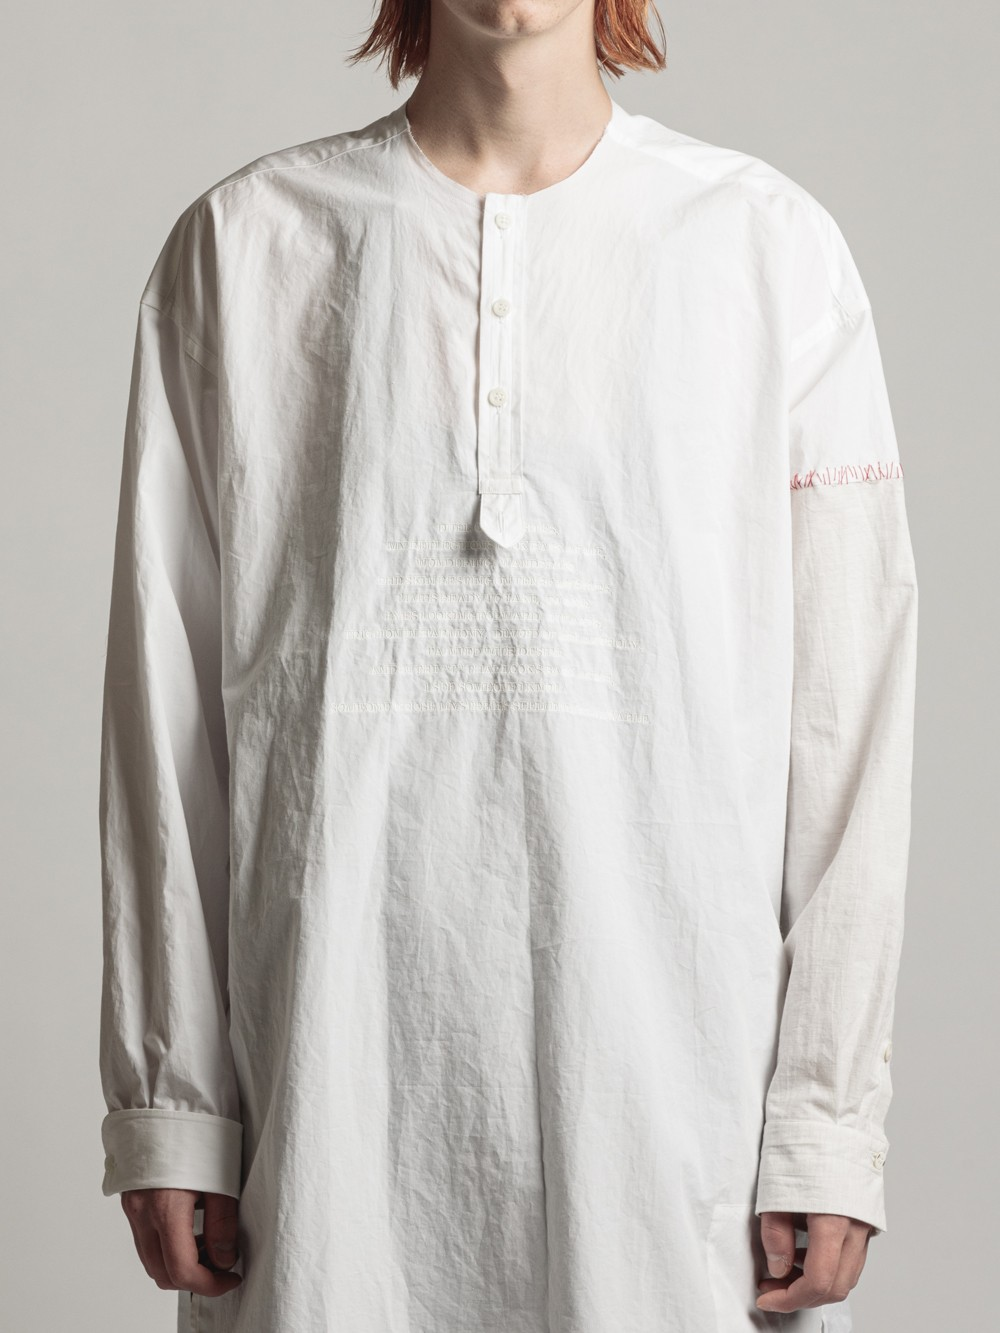 PULL-OVER EMBROIDERY SHIRTS